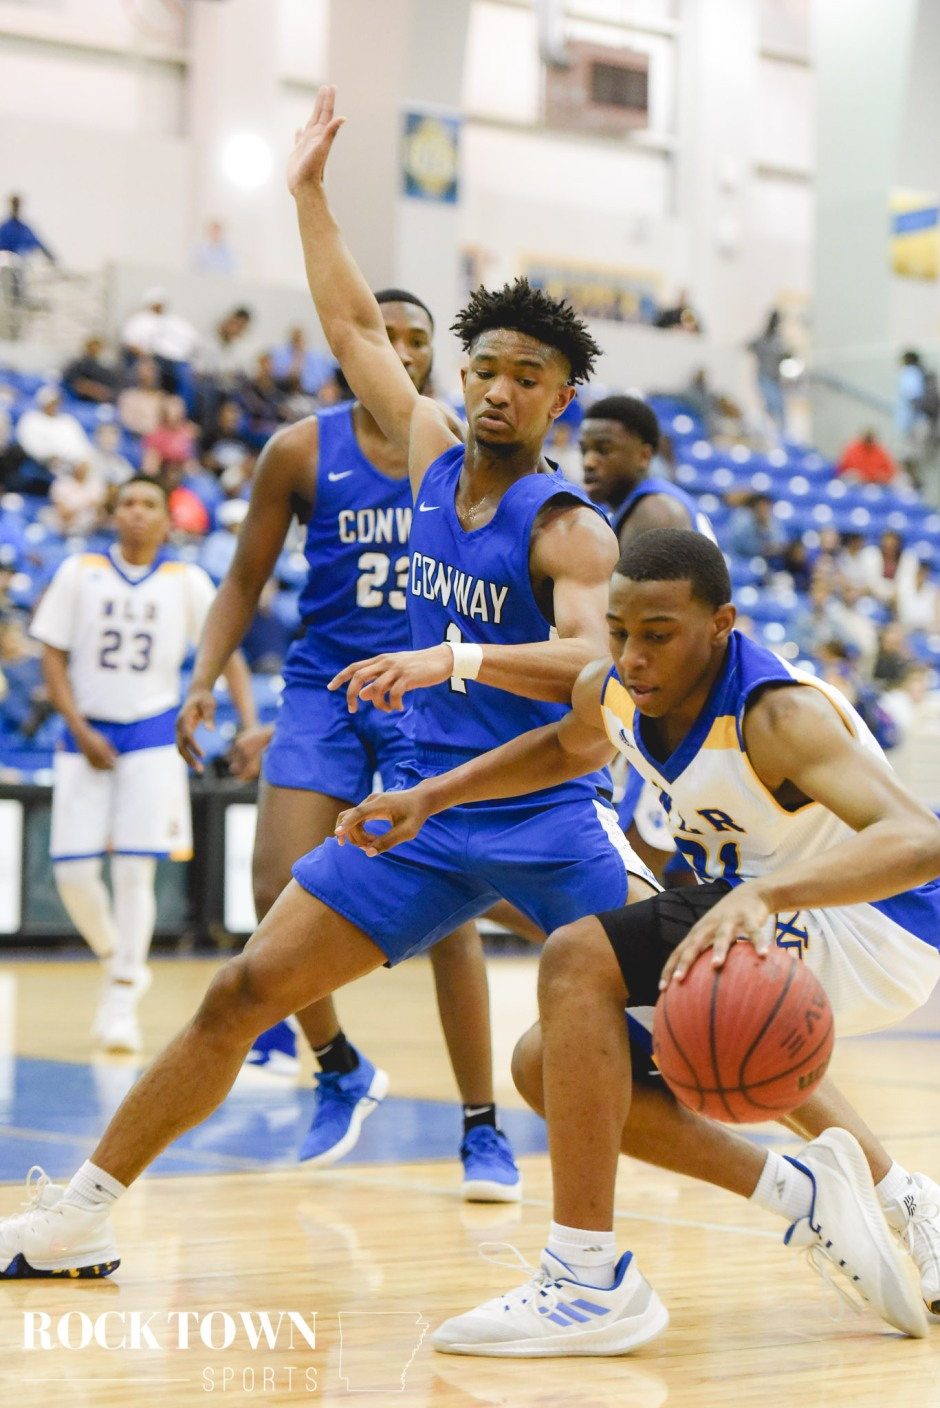 Conway_NLR_bball19(i)-53